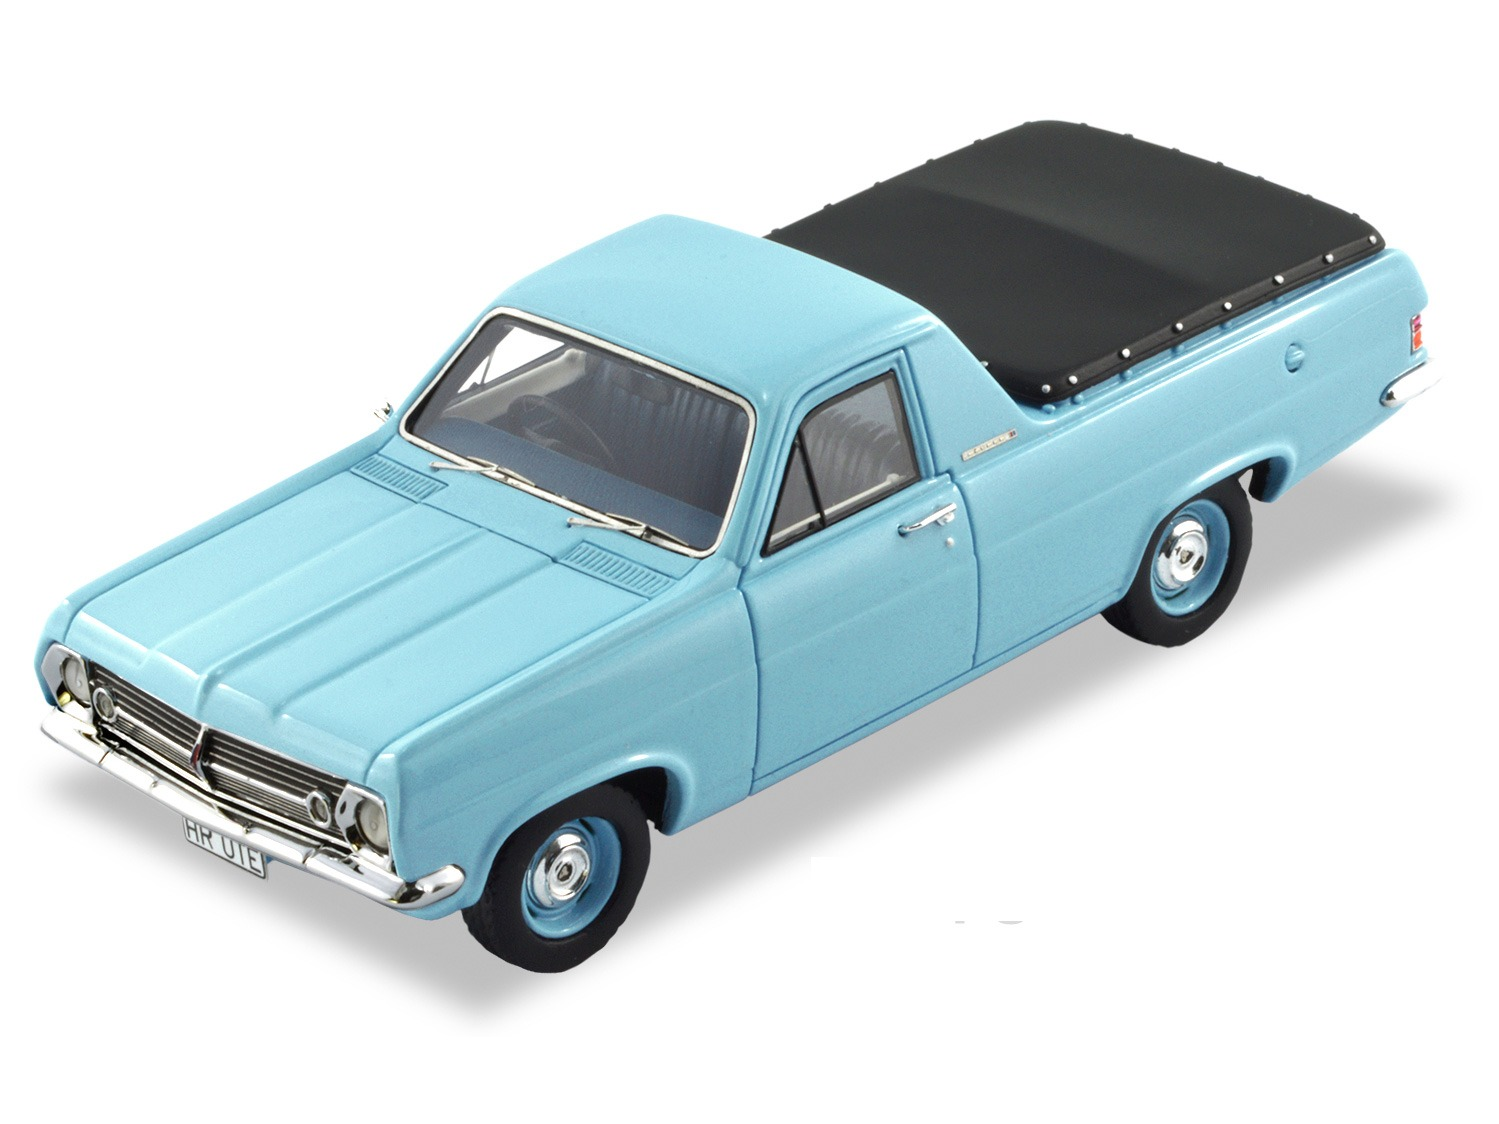 1967 HR Ute – Kurrewa Blue